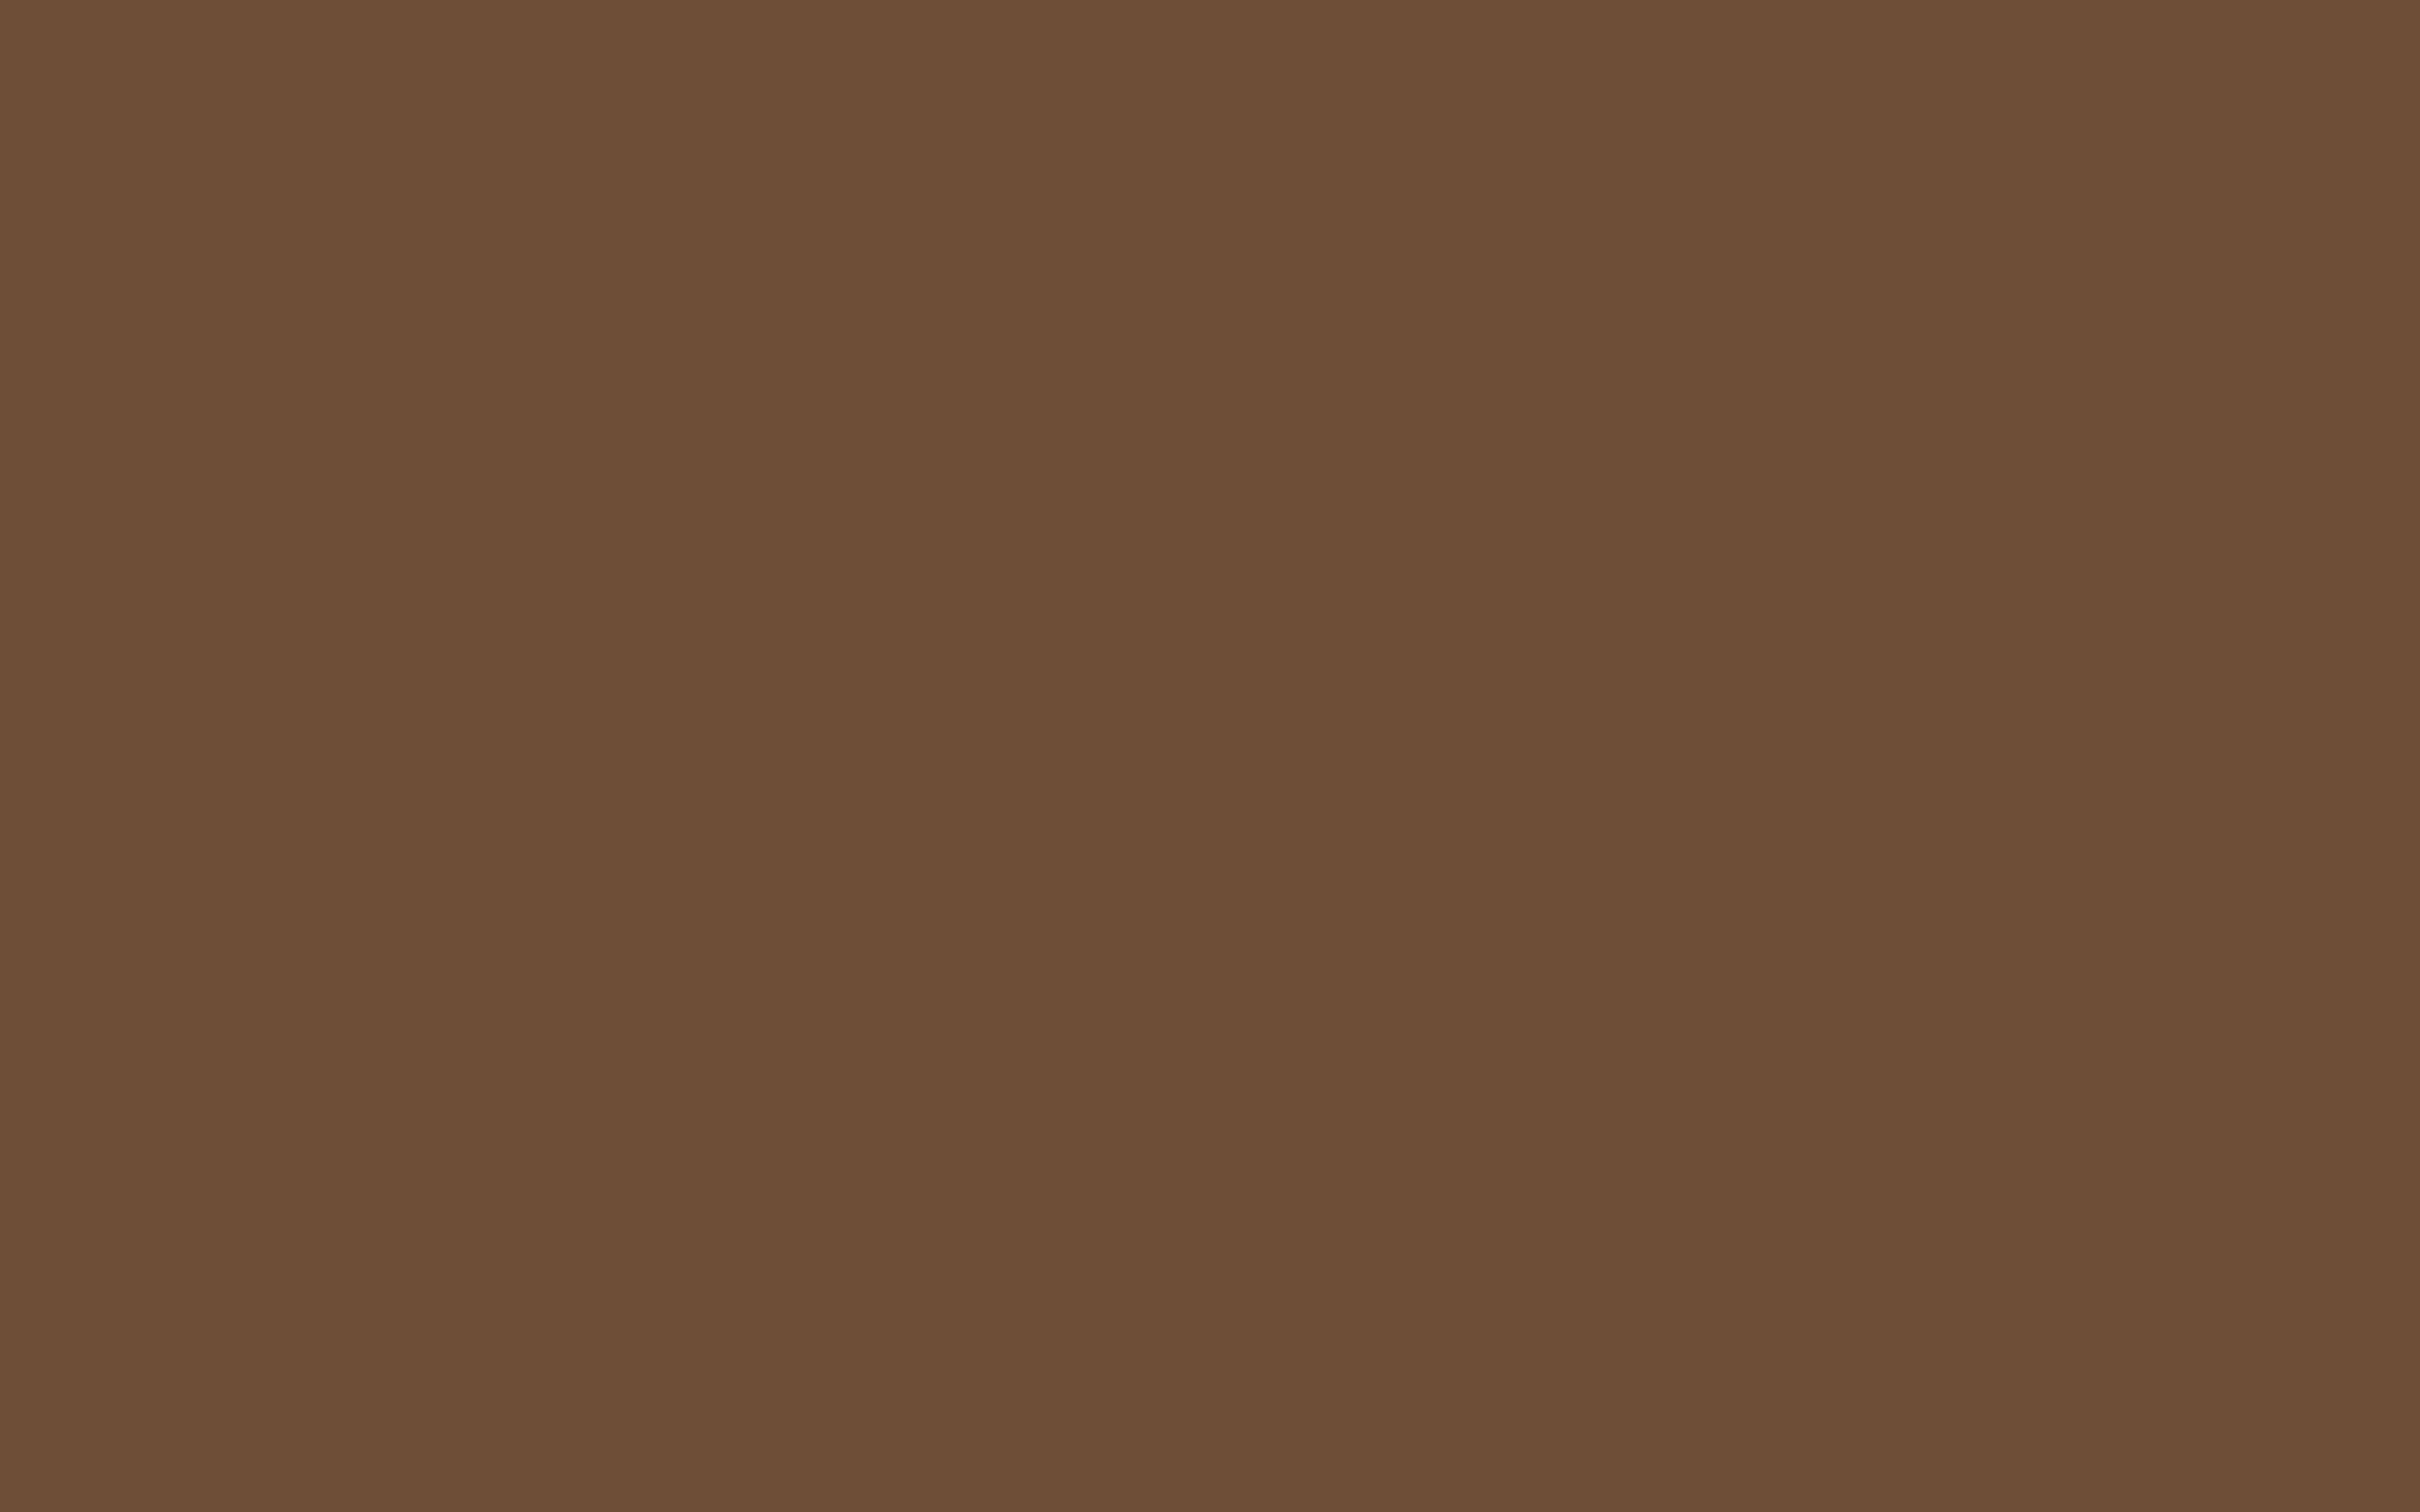 2560x1600 Coffee Solid Color Background